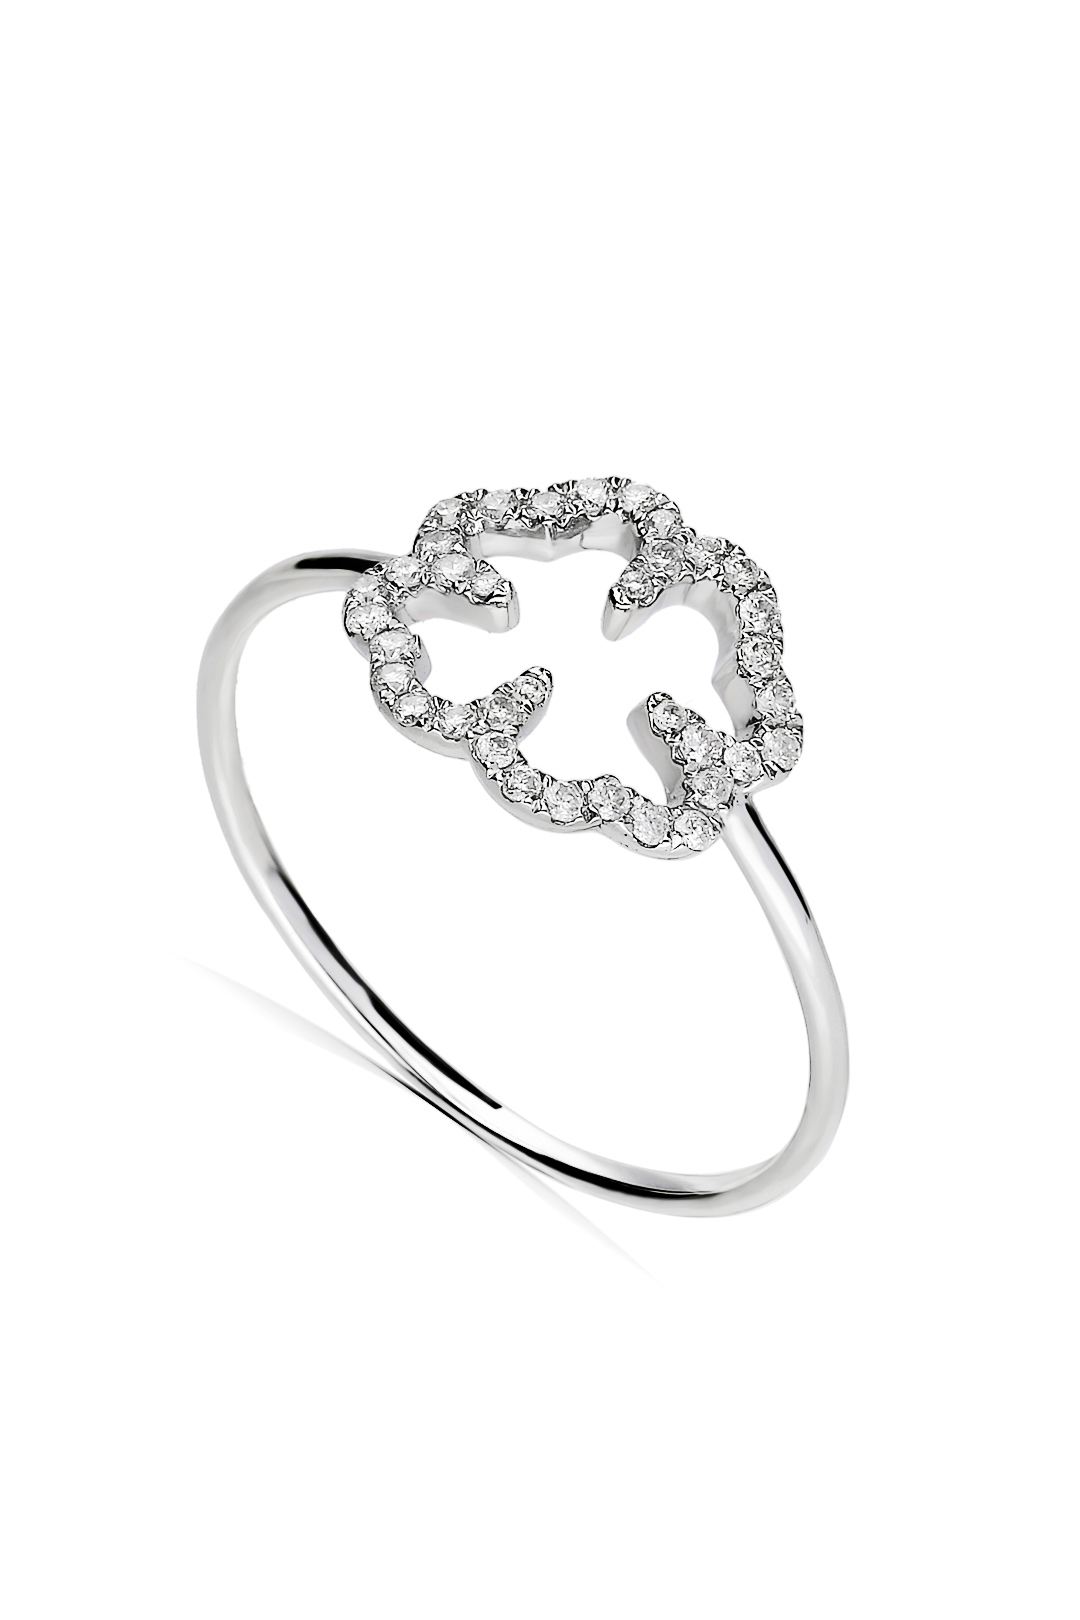 LEAF DIAMOND RING